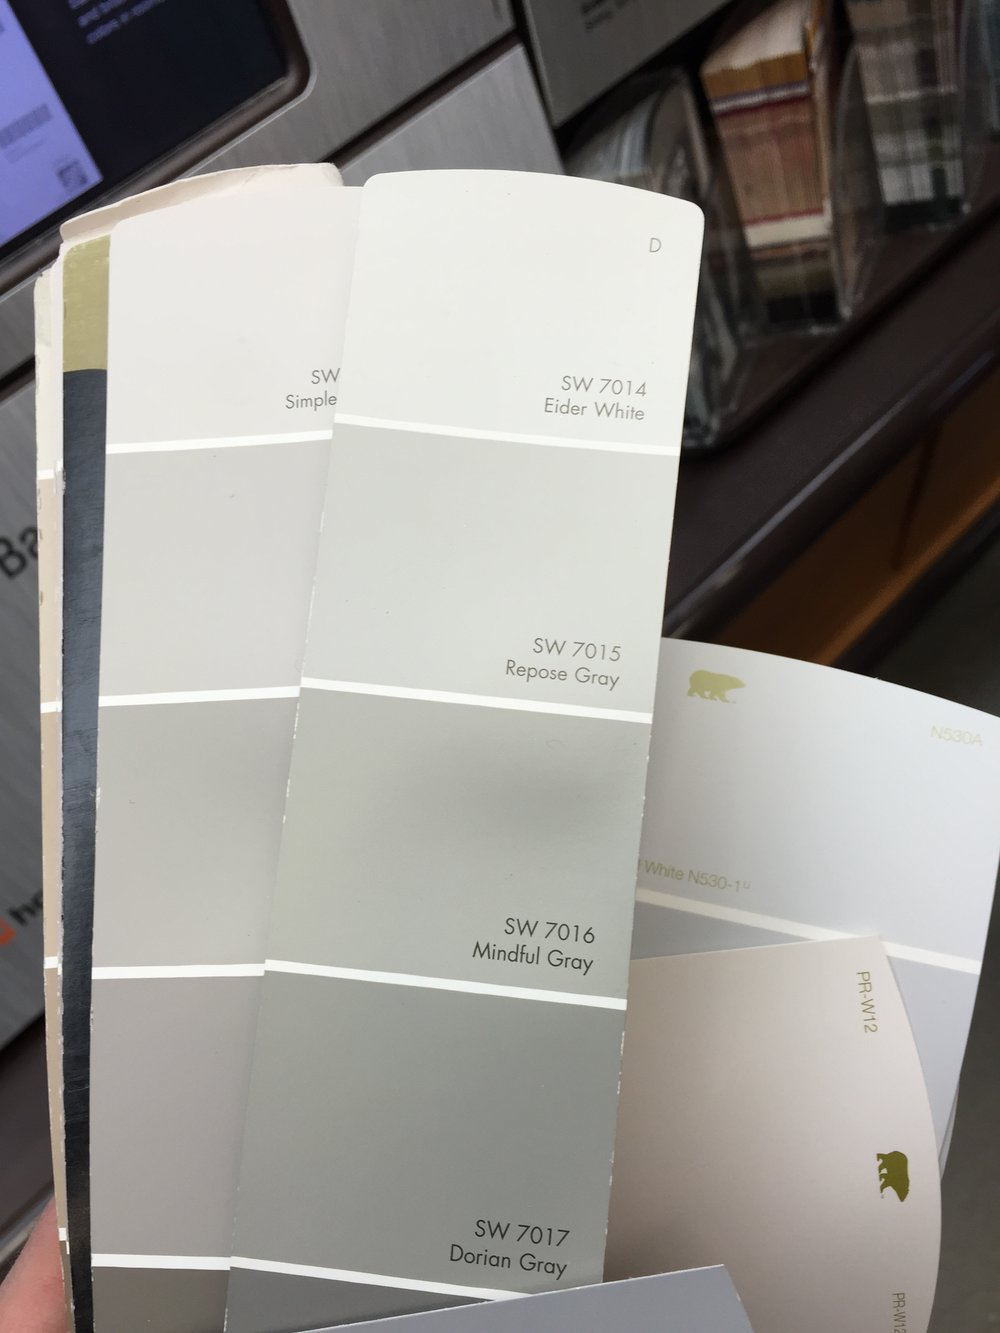 Sherwin Williams color spectrum with Eider White